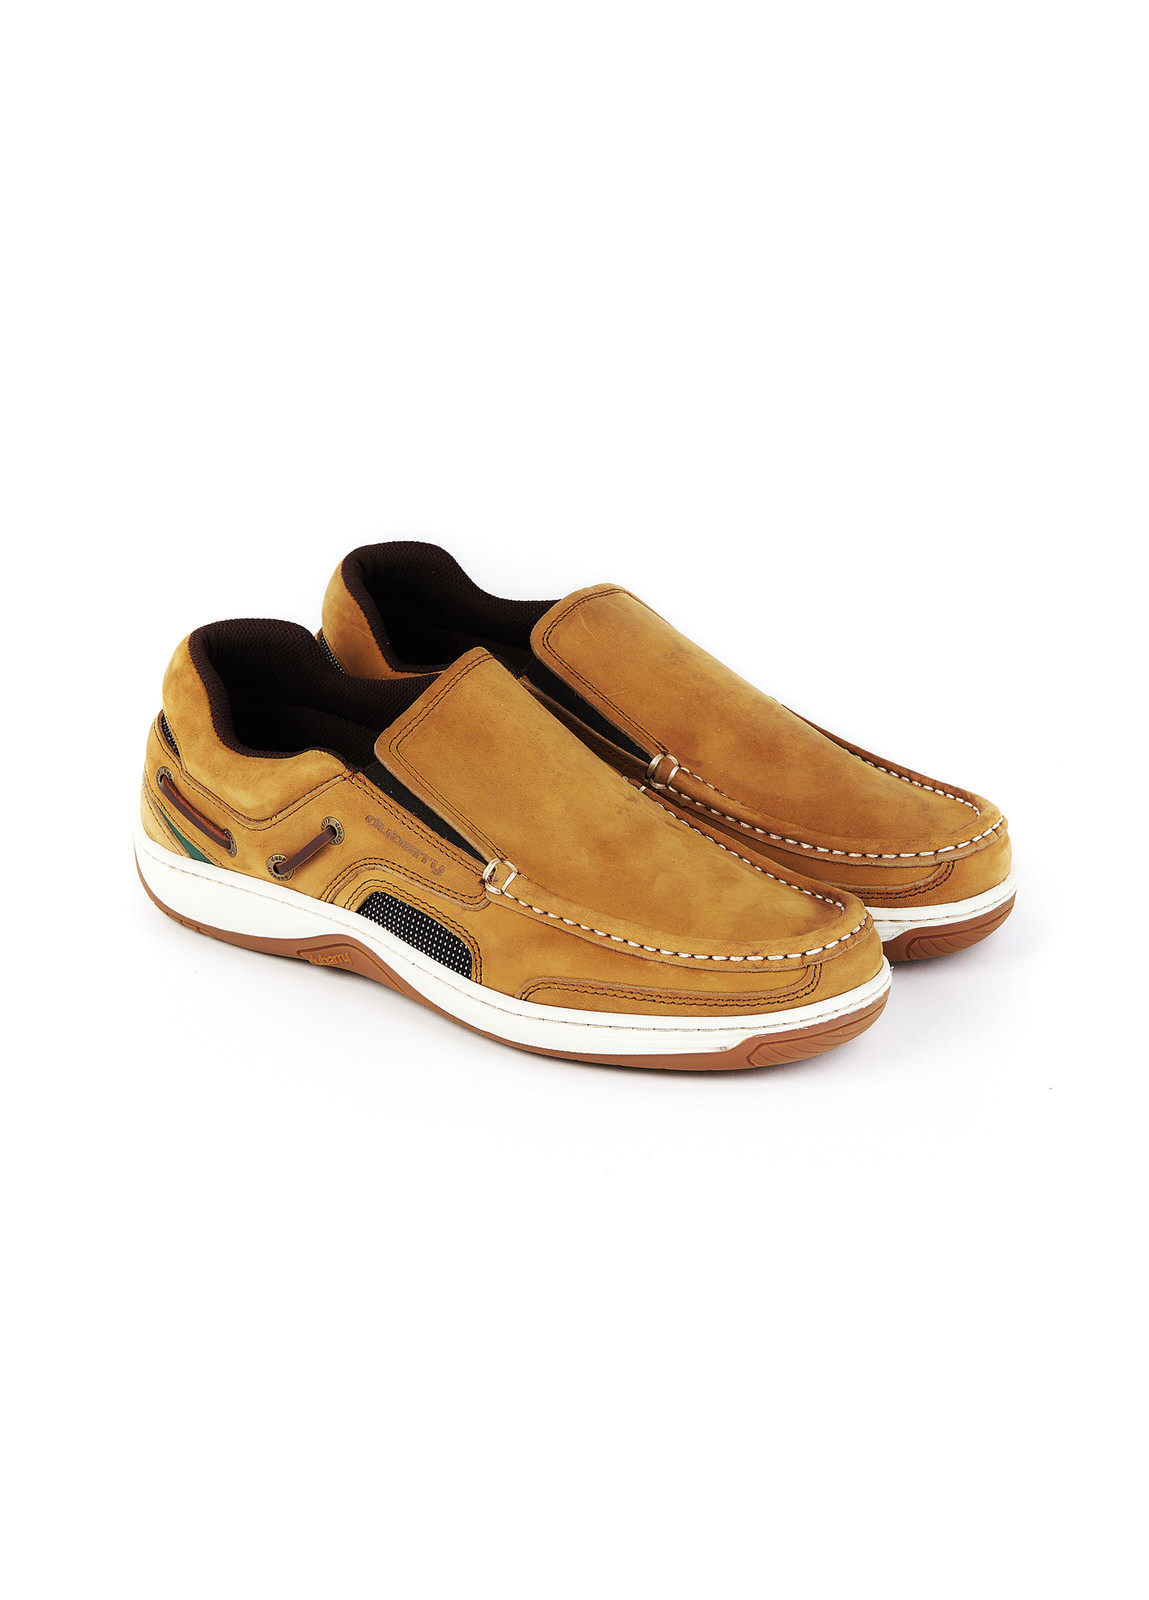 Yacht_Loafer_Brown_Image_1